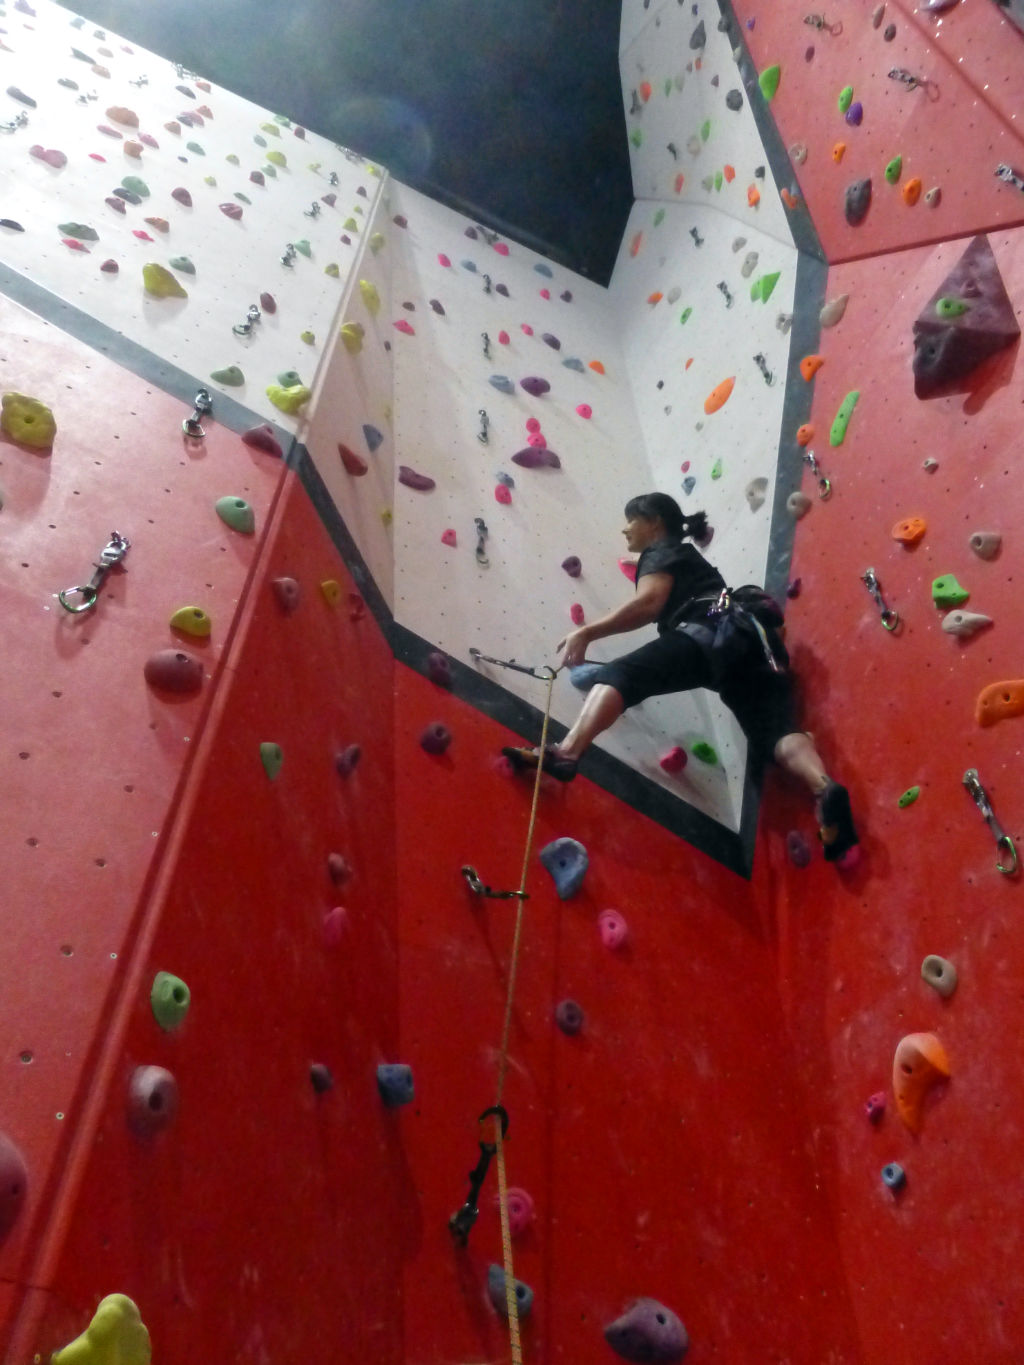 Warming up on pink 4+, Awesome Walls, Liverpool, 2019